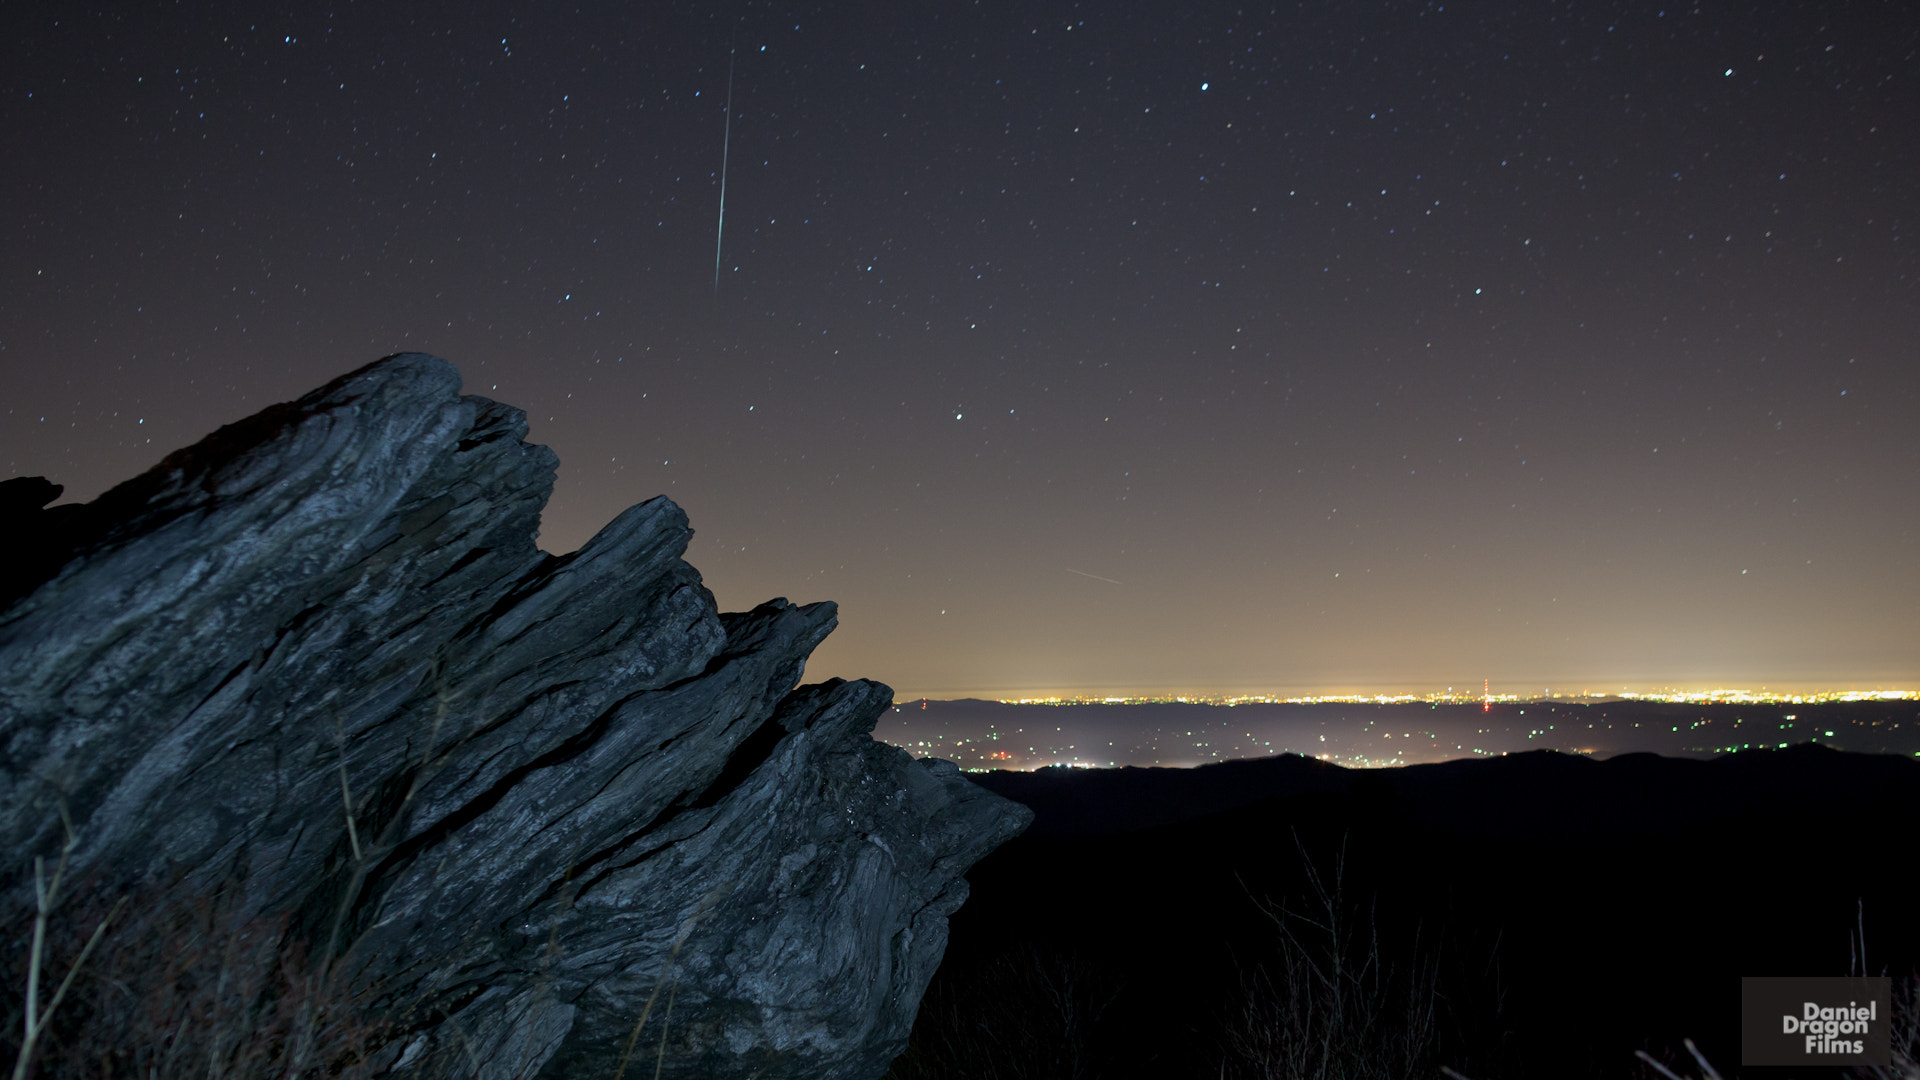 Photograph Silent Witness (Geminid Meteor) by Daniel Lowe on 500px